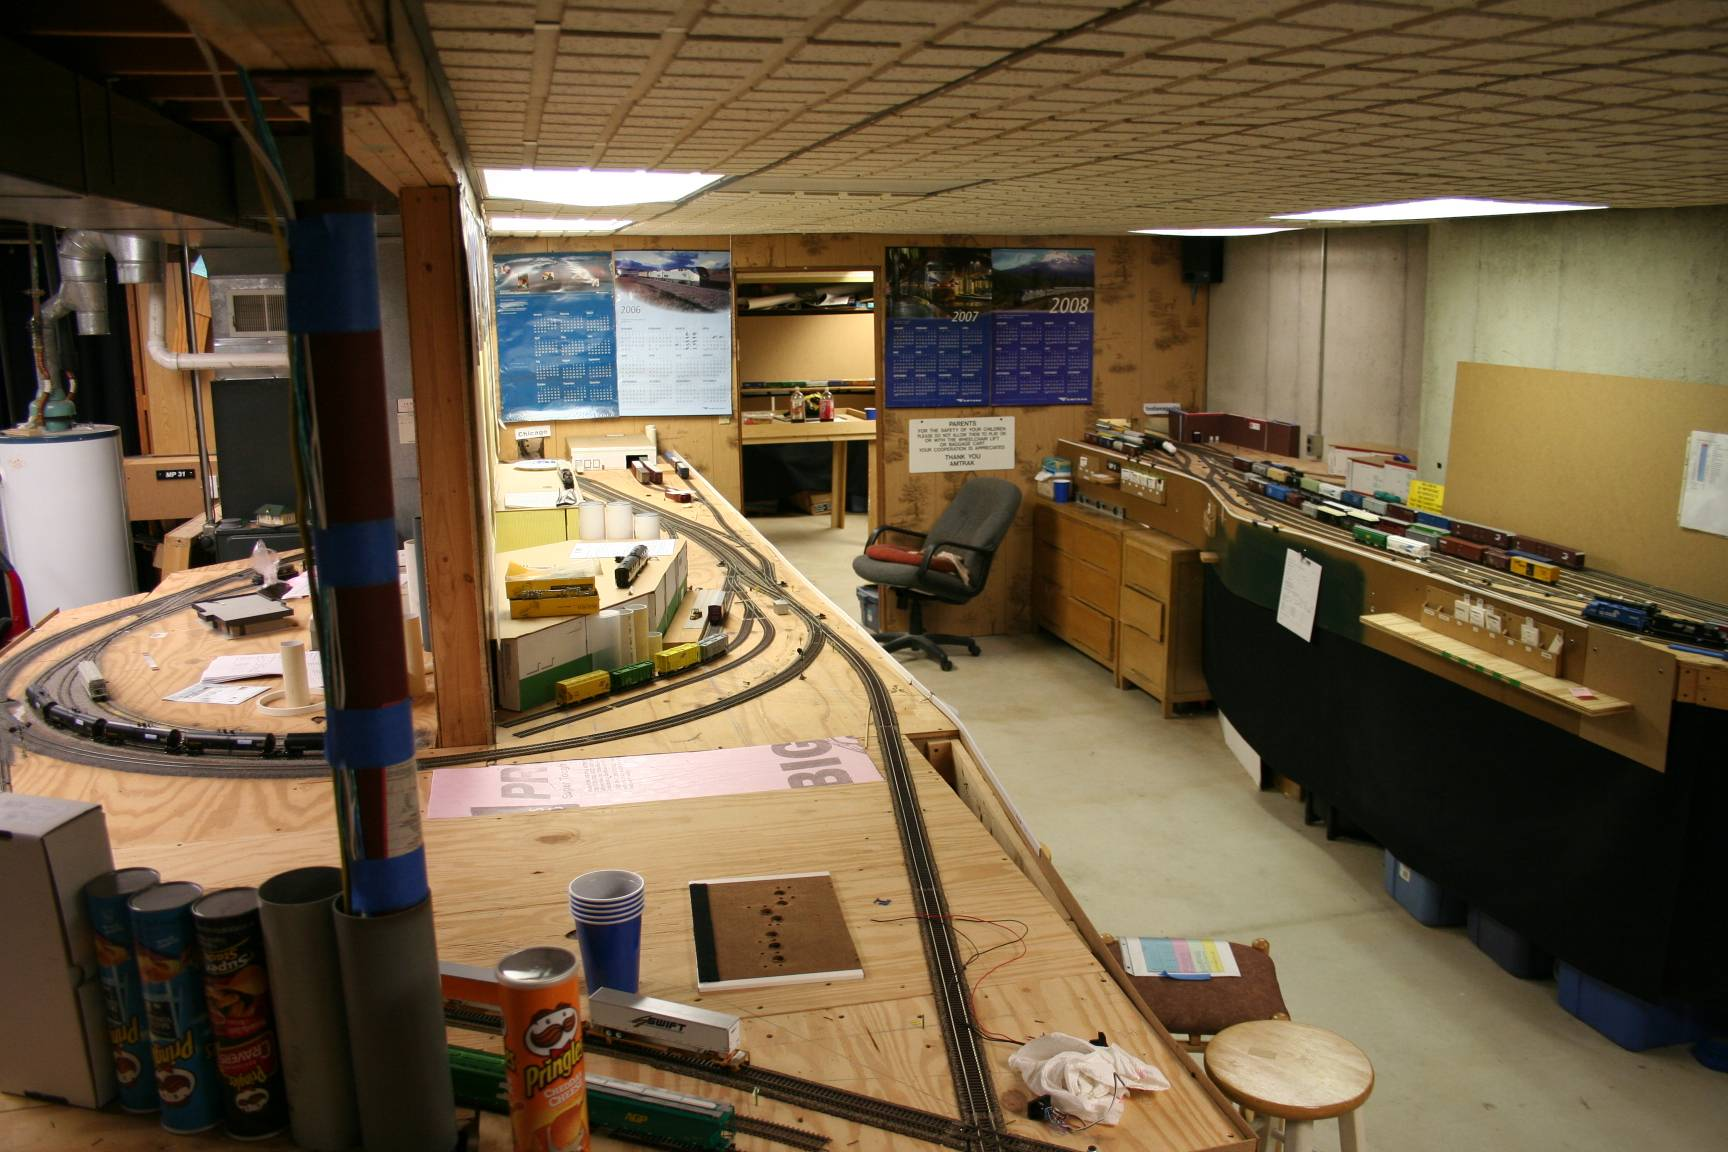 Over view of the layout